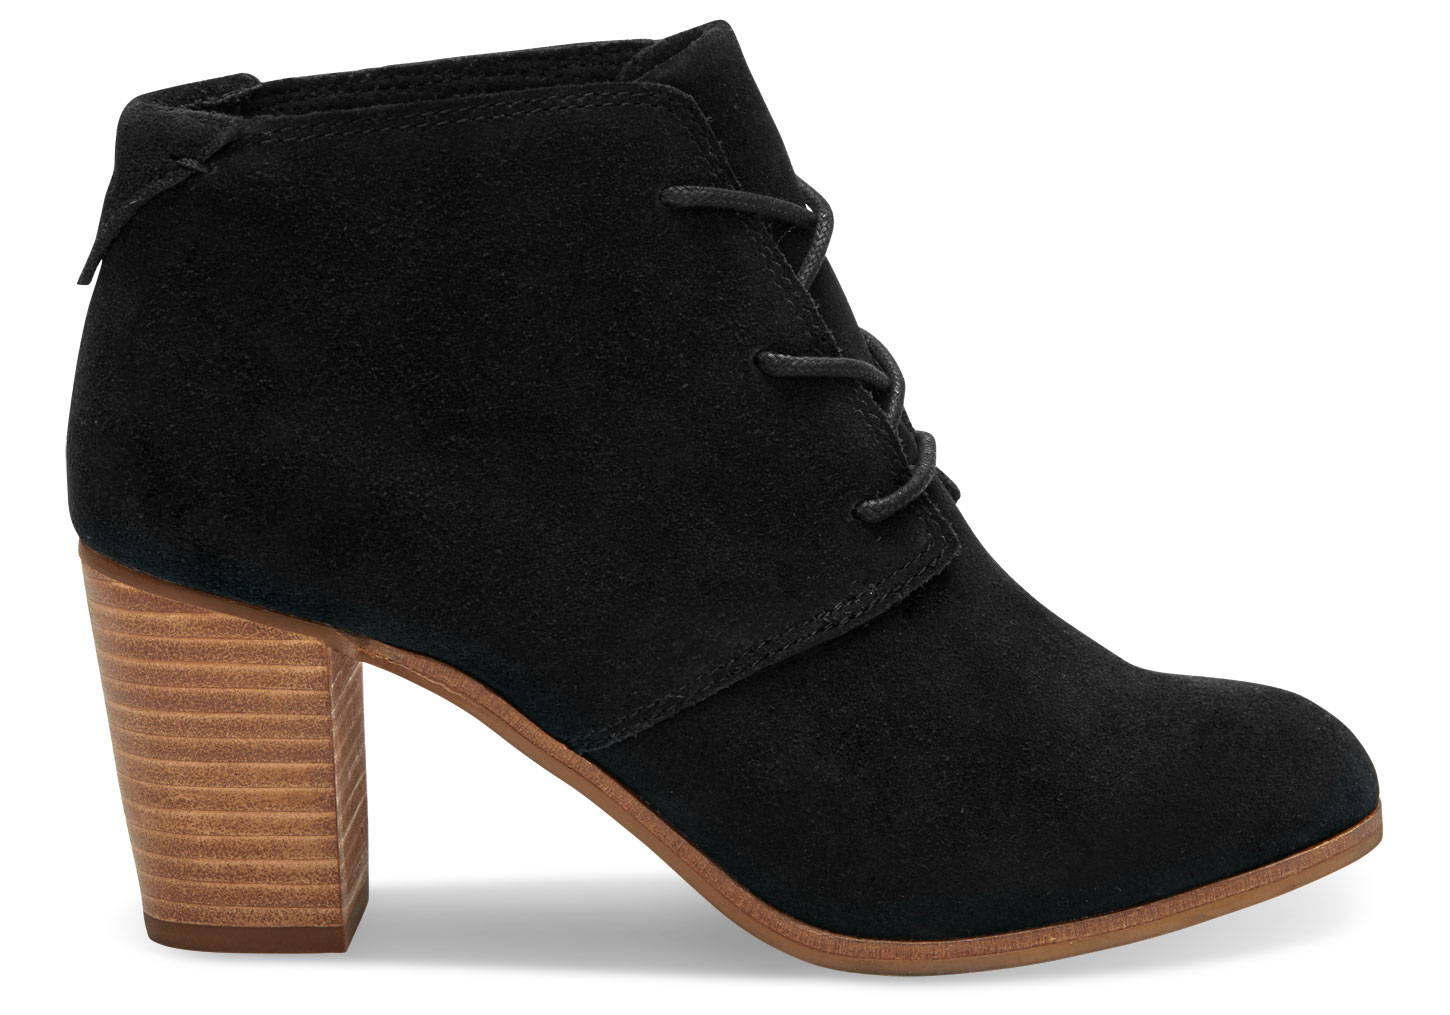 Black Womens Boots Sale uJnokIAd